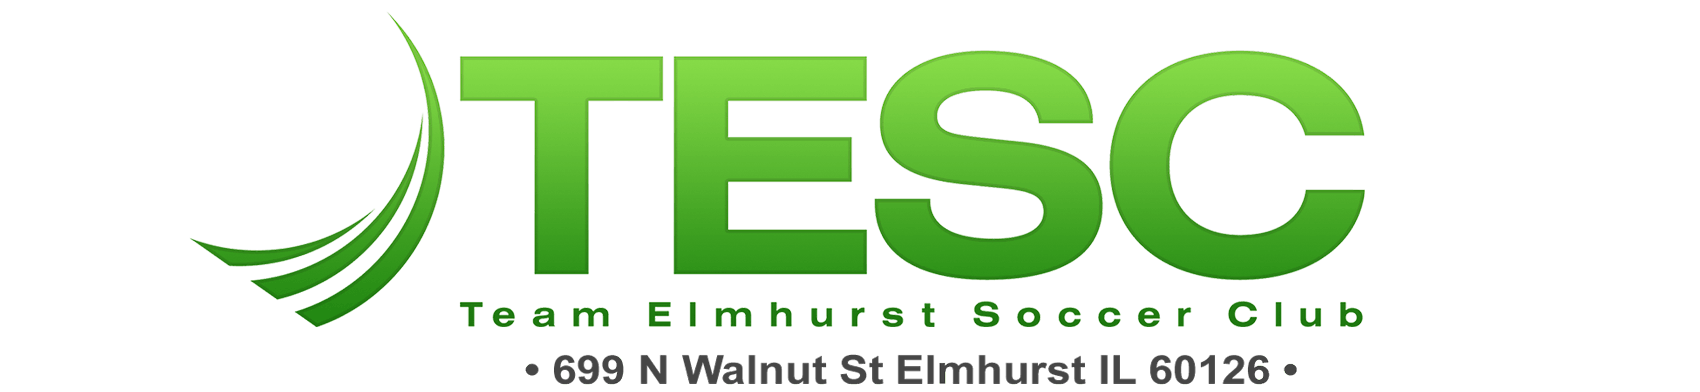 Team Elmhurst Soccer Club | Elmhurst, Illinois, Soccer, Goal, Field